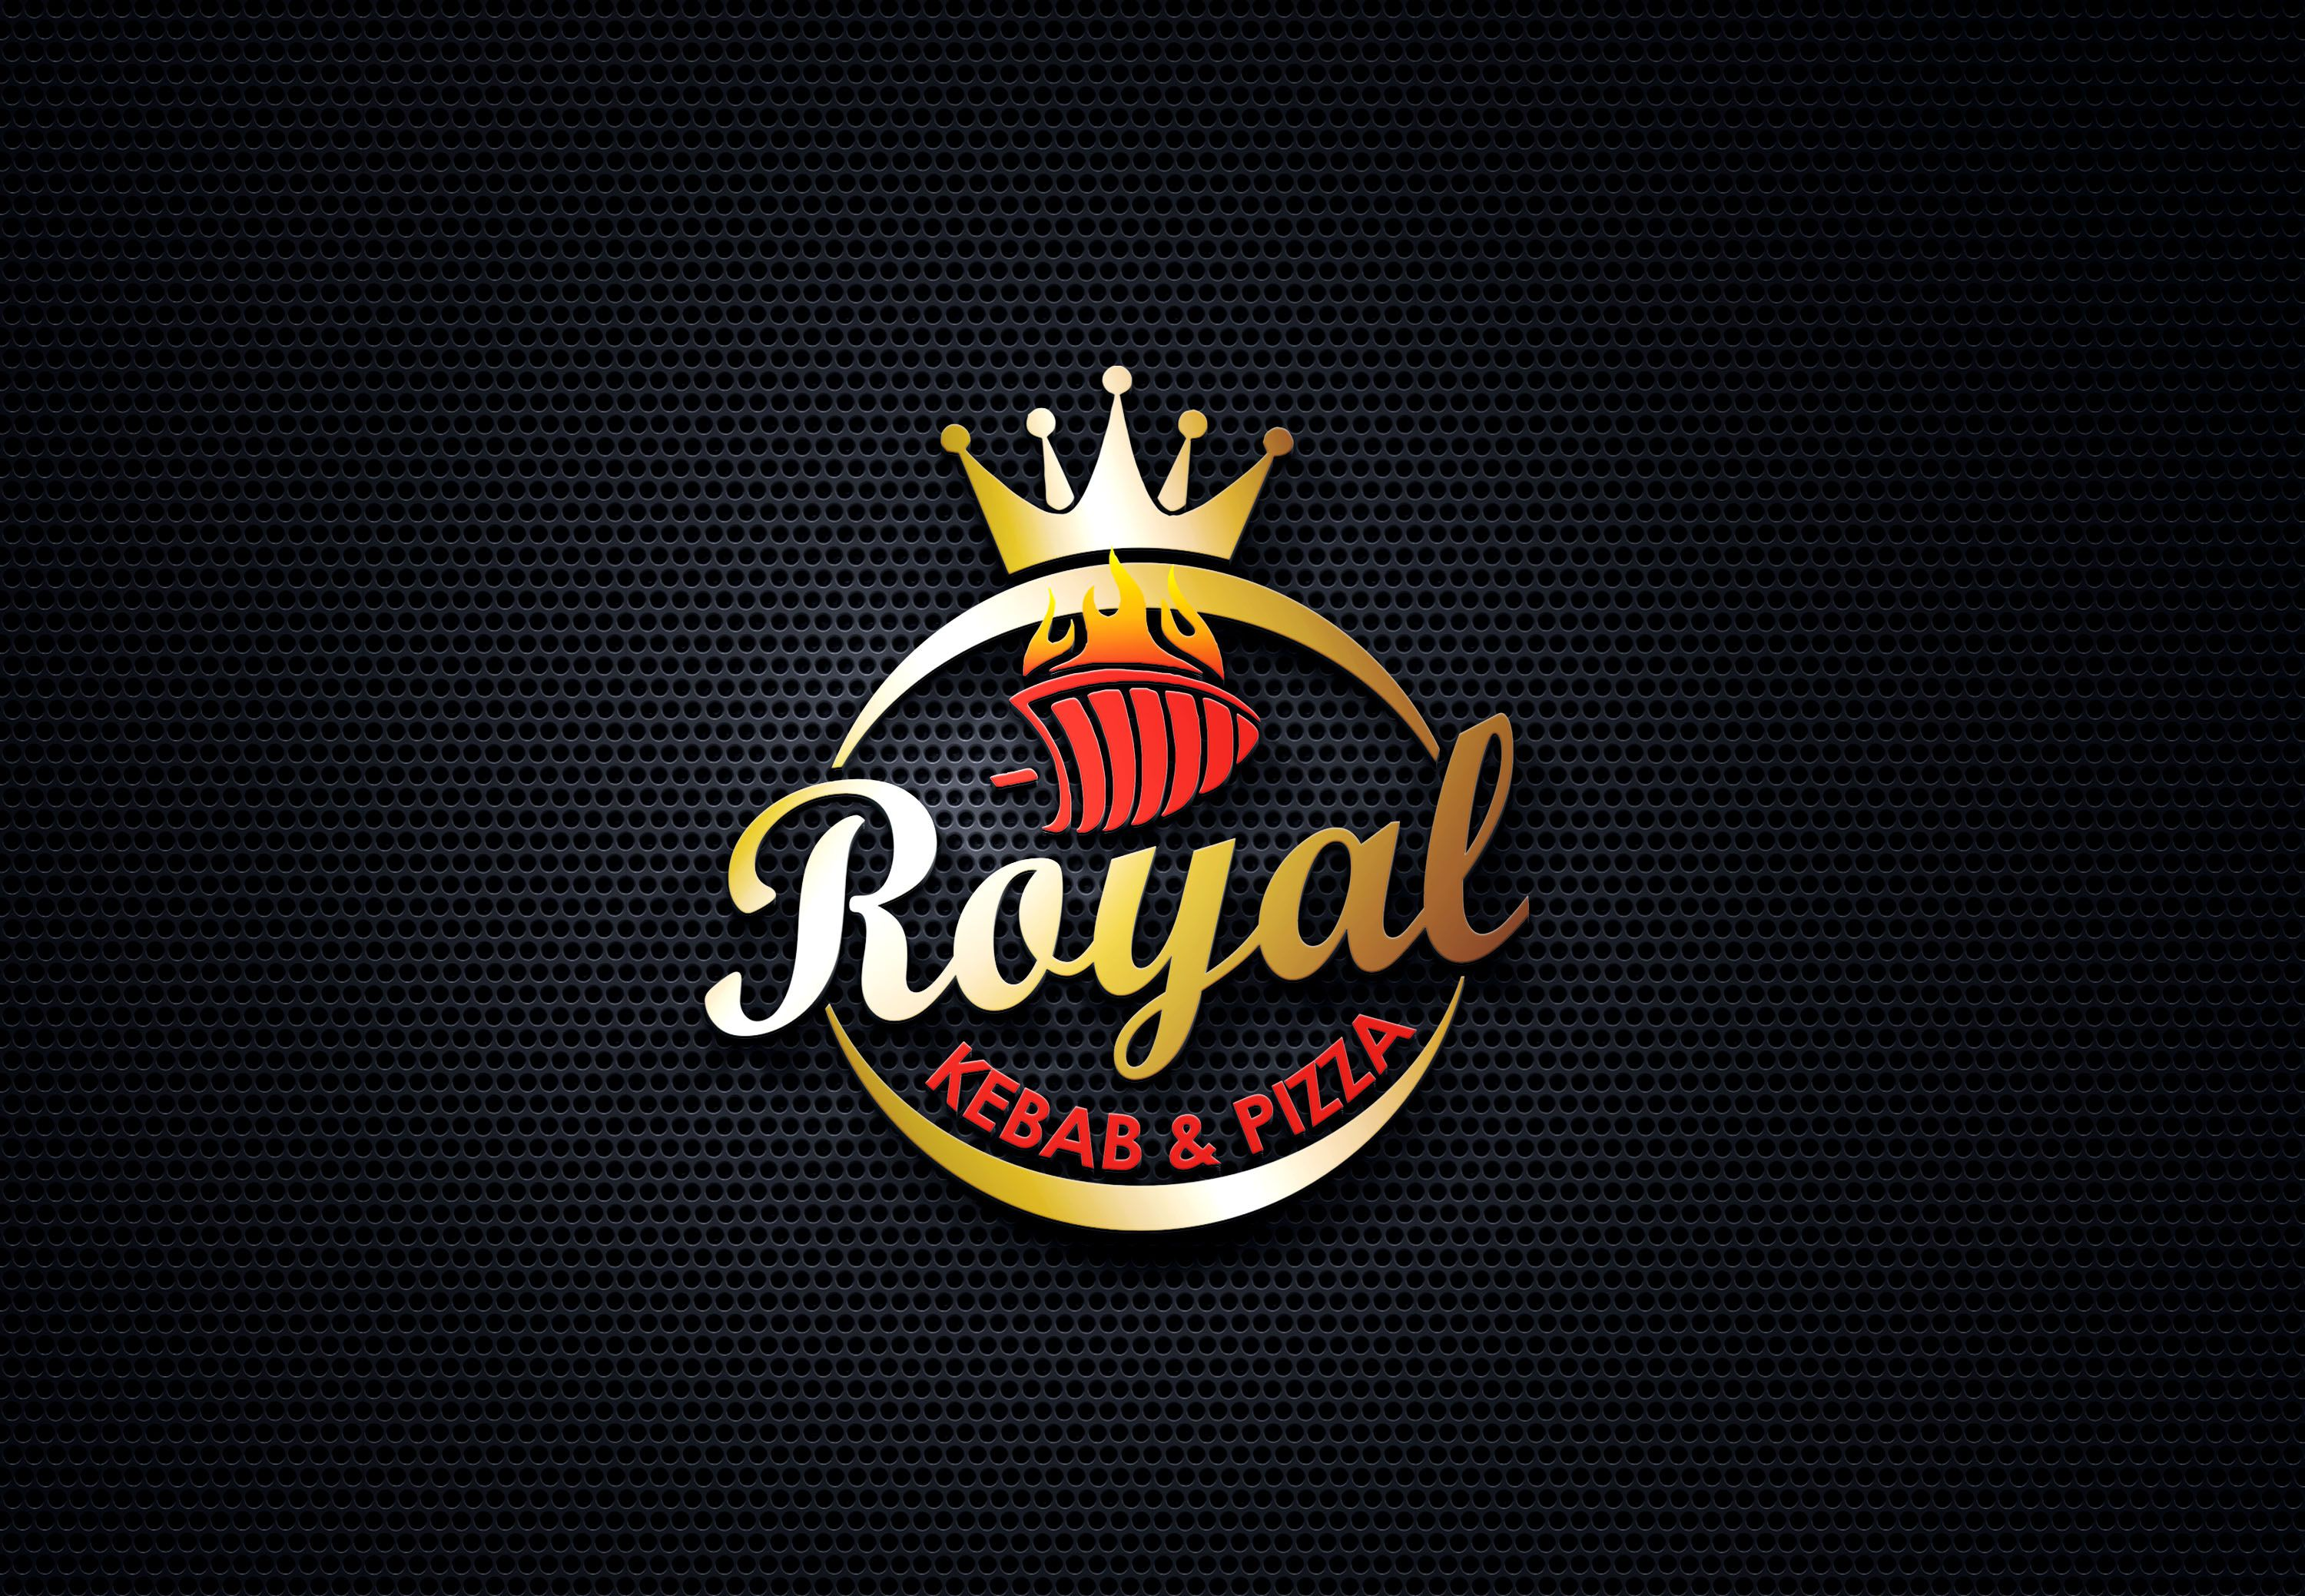 Royal kebab & pizza